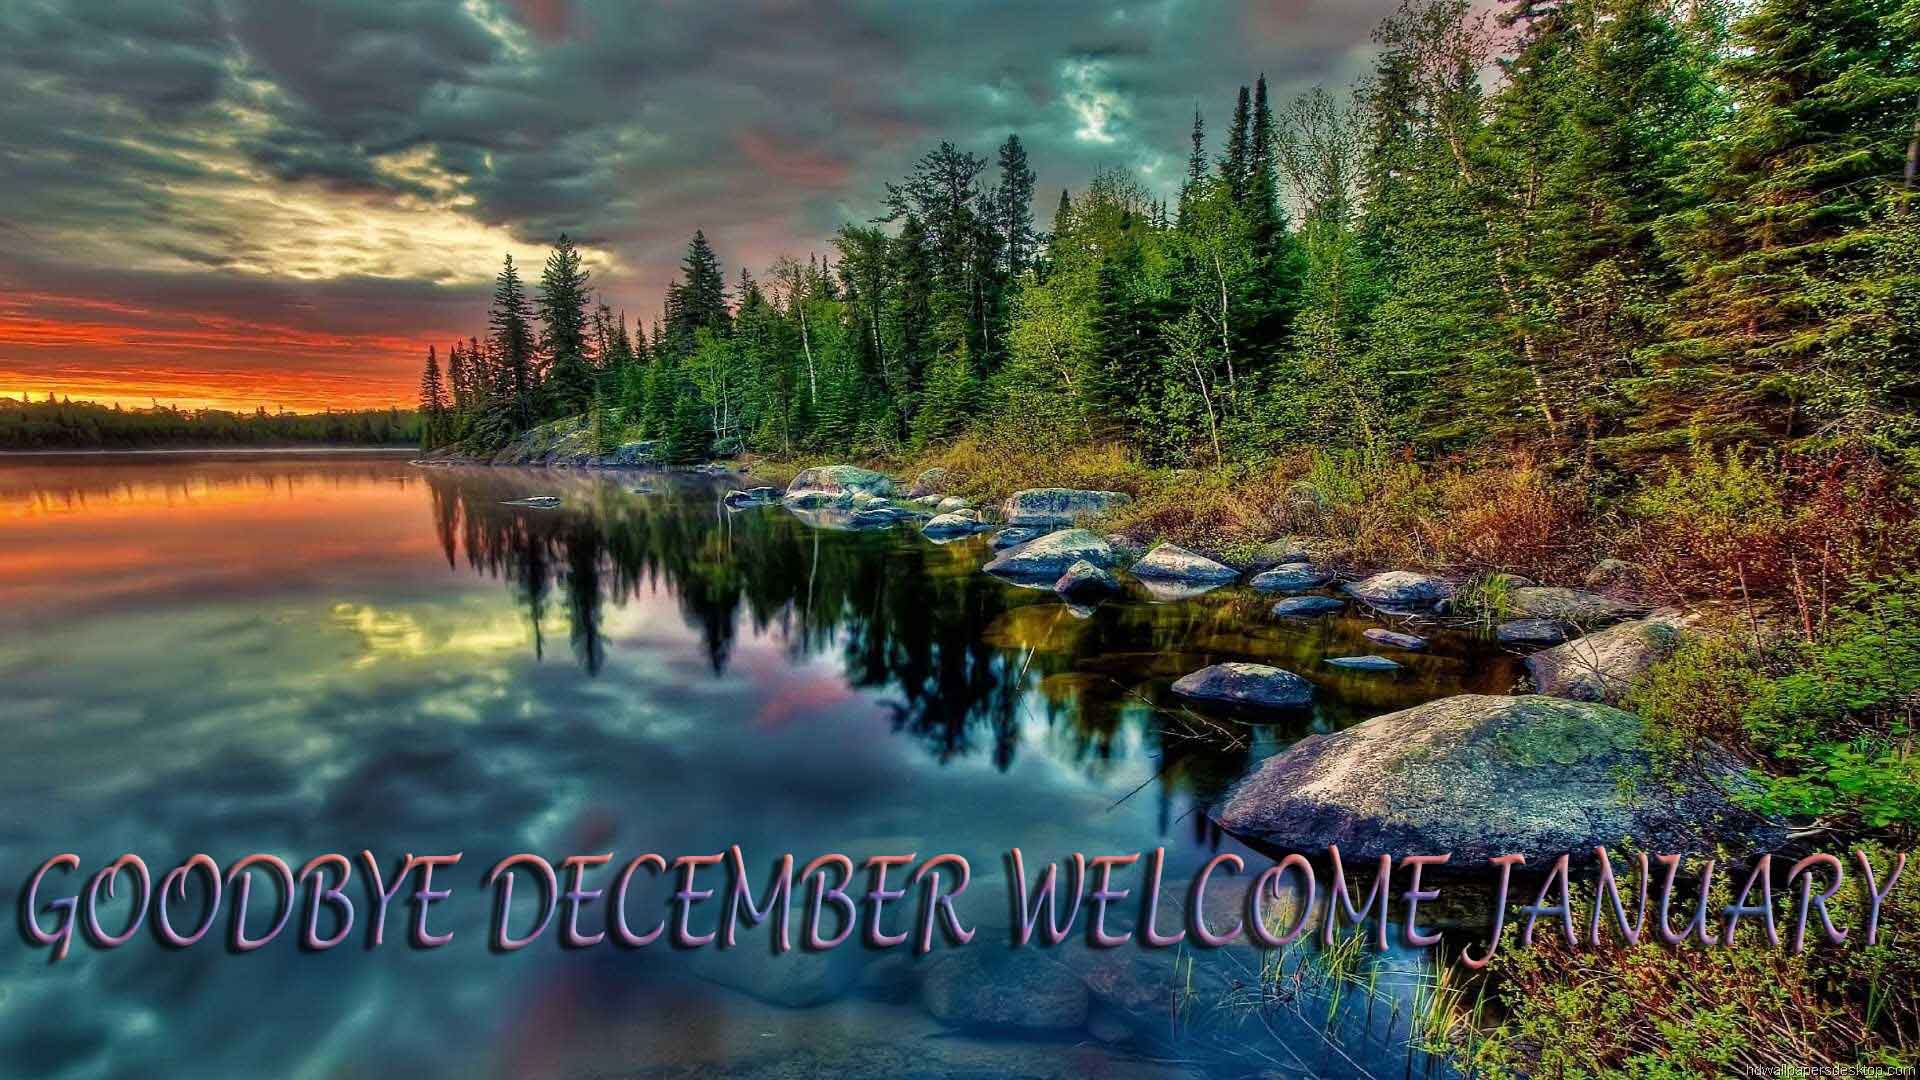 Goodbye December Hello January Images Quotes